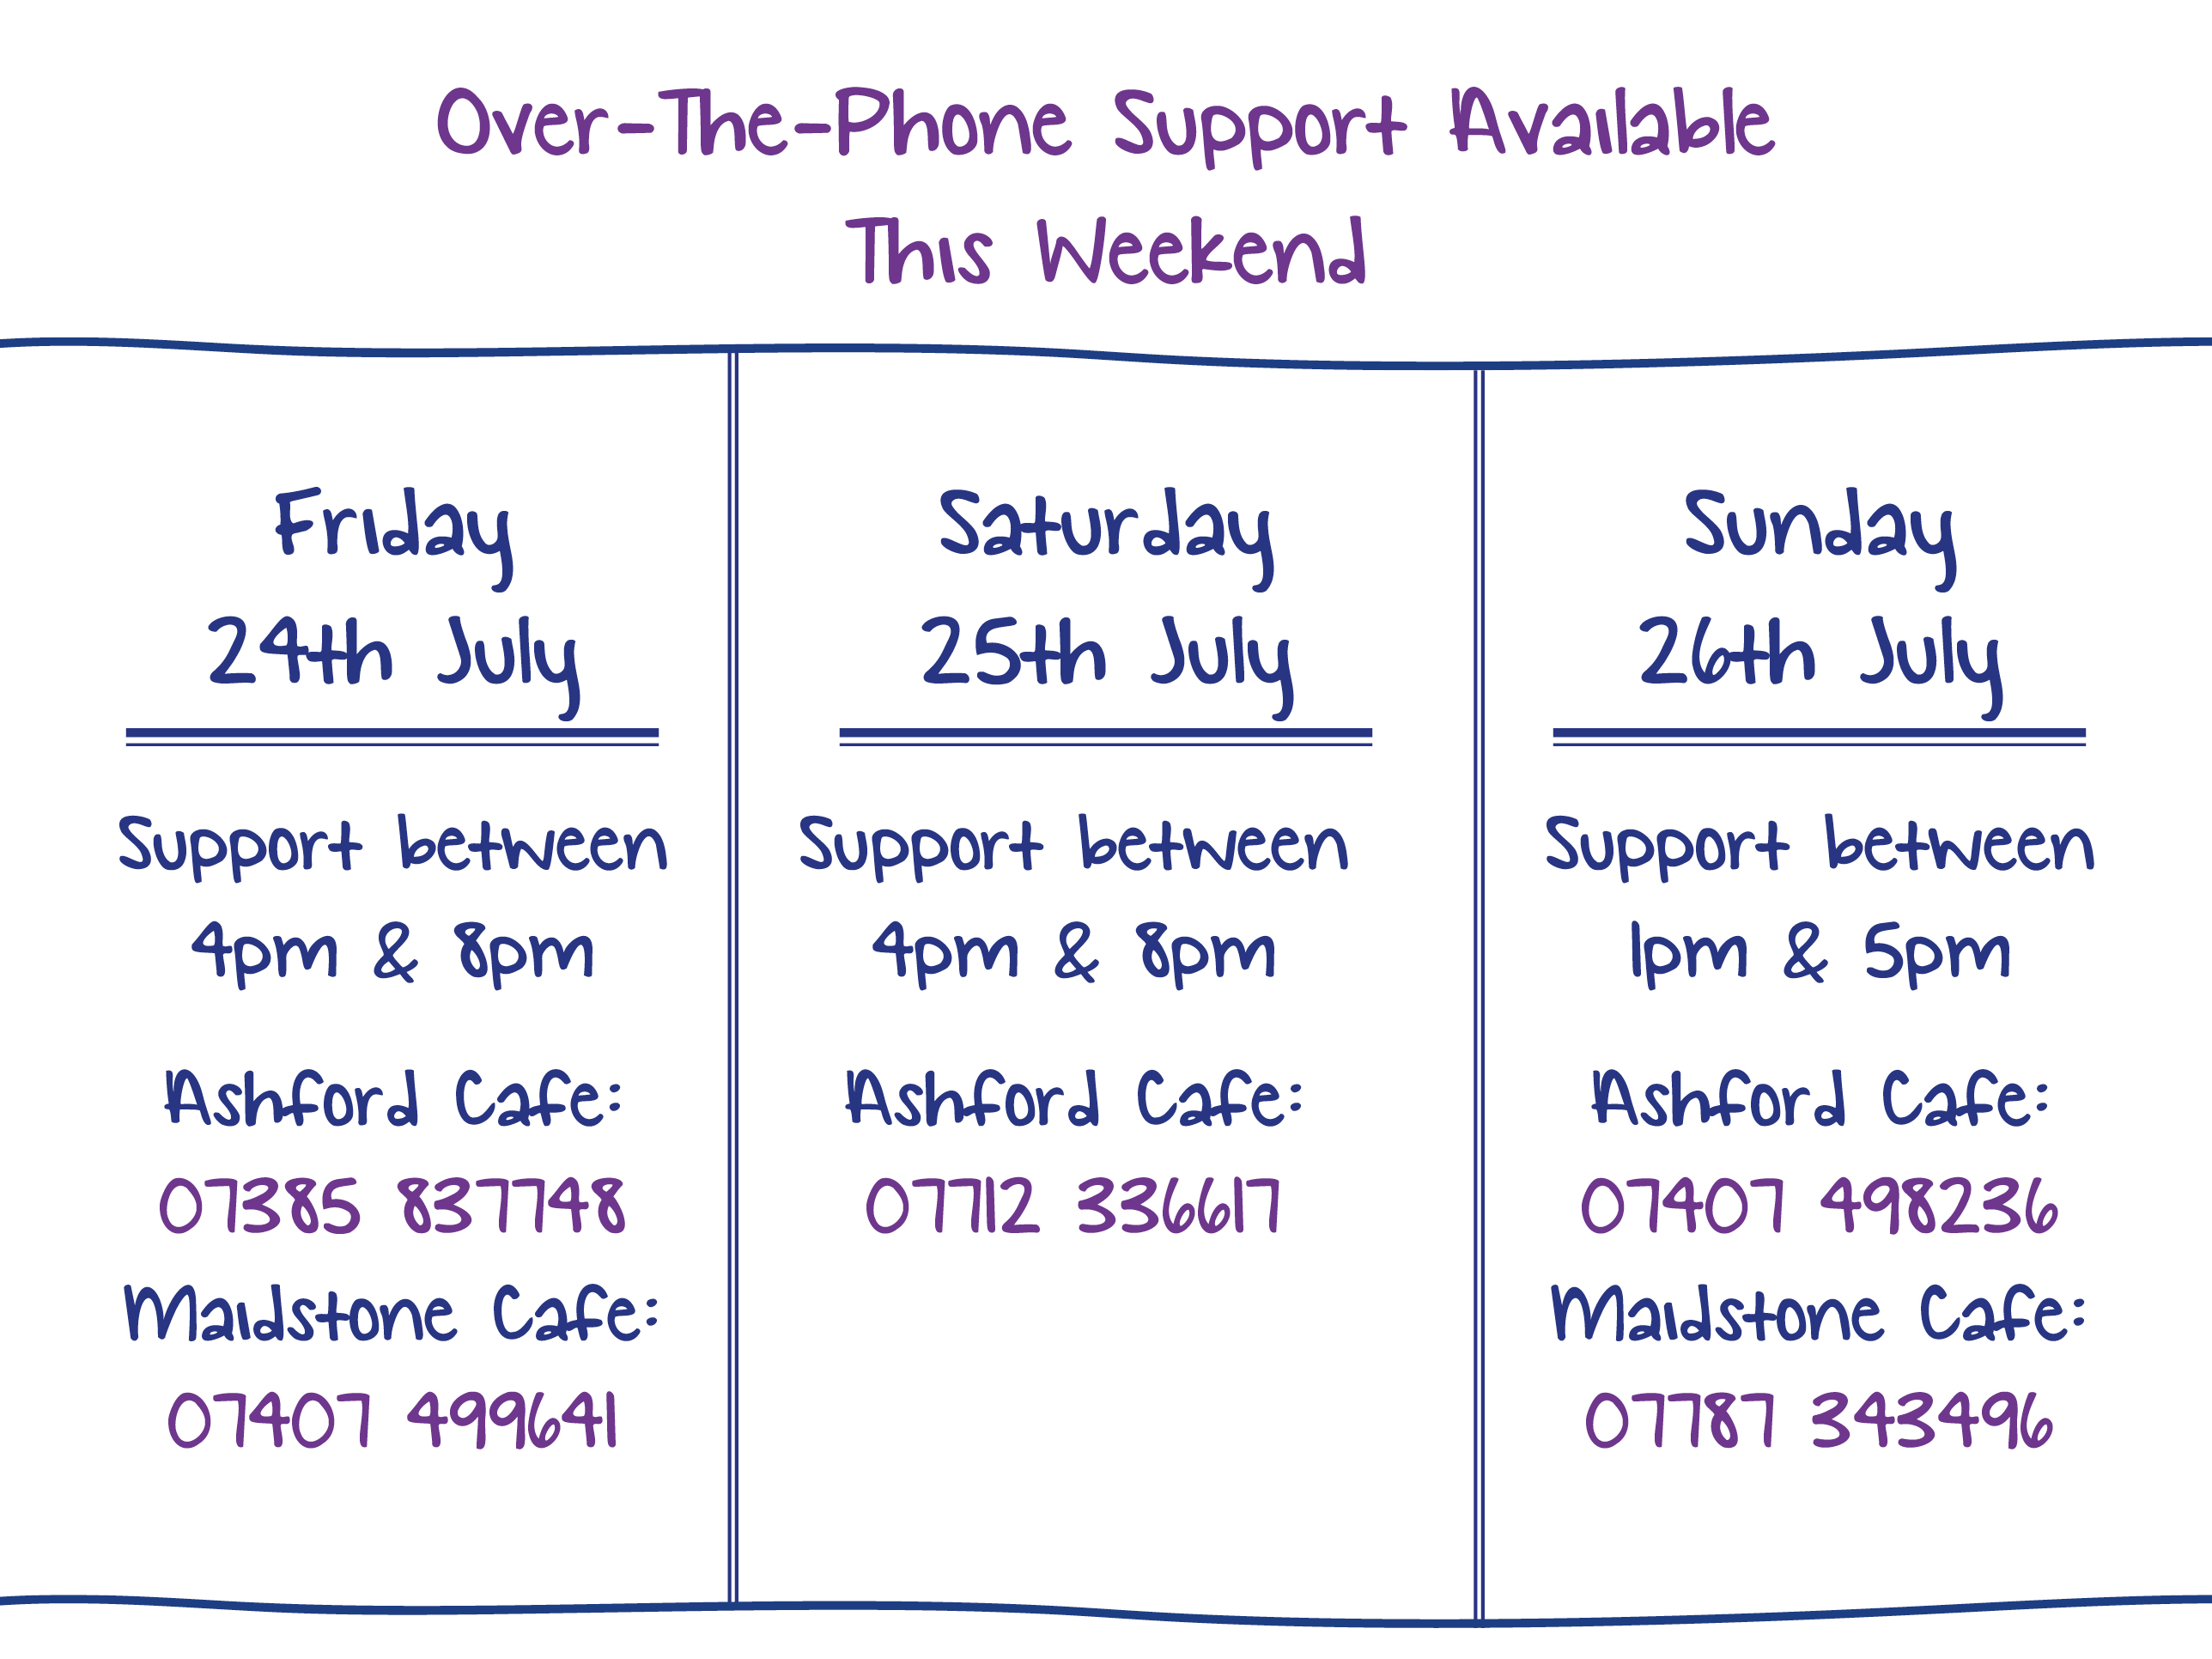 Over-The-Phone Support Available This Weekend. Friday 24th July. Support between 4pm & 8pm Ashford Cafe: 07385 837748 Maidstone Cafe: 07407 499641. Saturday 25th July. Support between 4pm & 8pm Ashford Cafe: 07712 336617. Sunday 26th July. Support between 1pm & 5pm Ashford Cafe: 07407 498236 Maidstone Cafe: 07787 343496